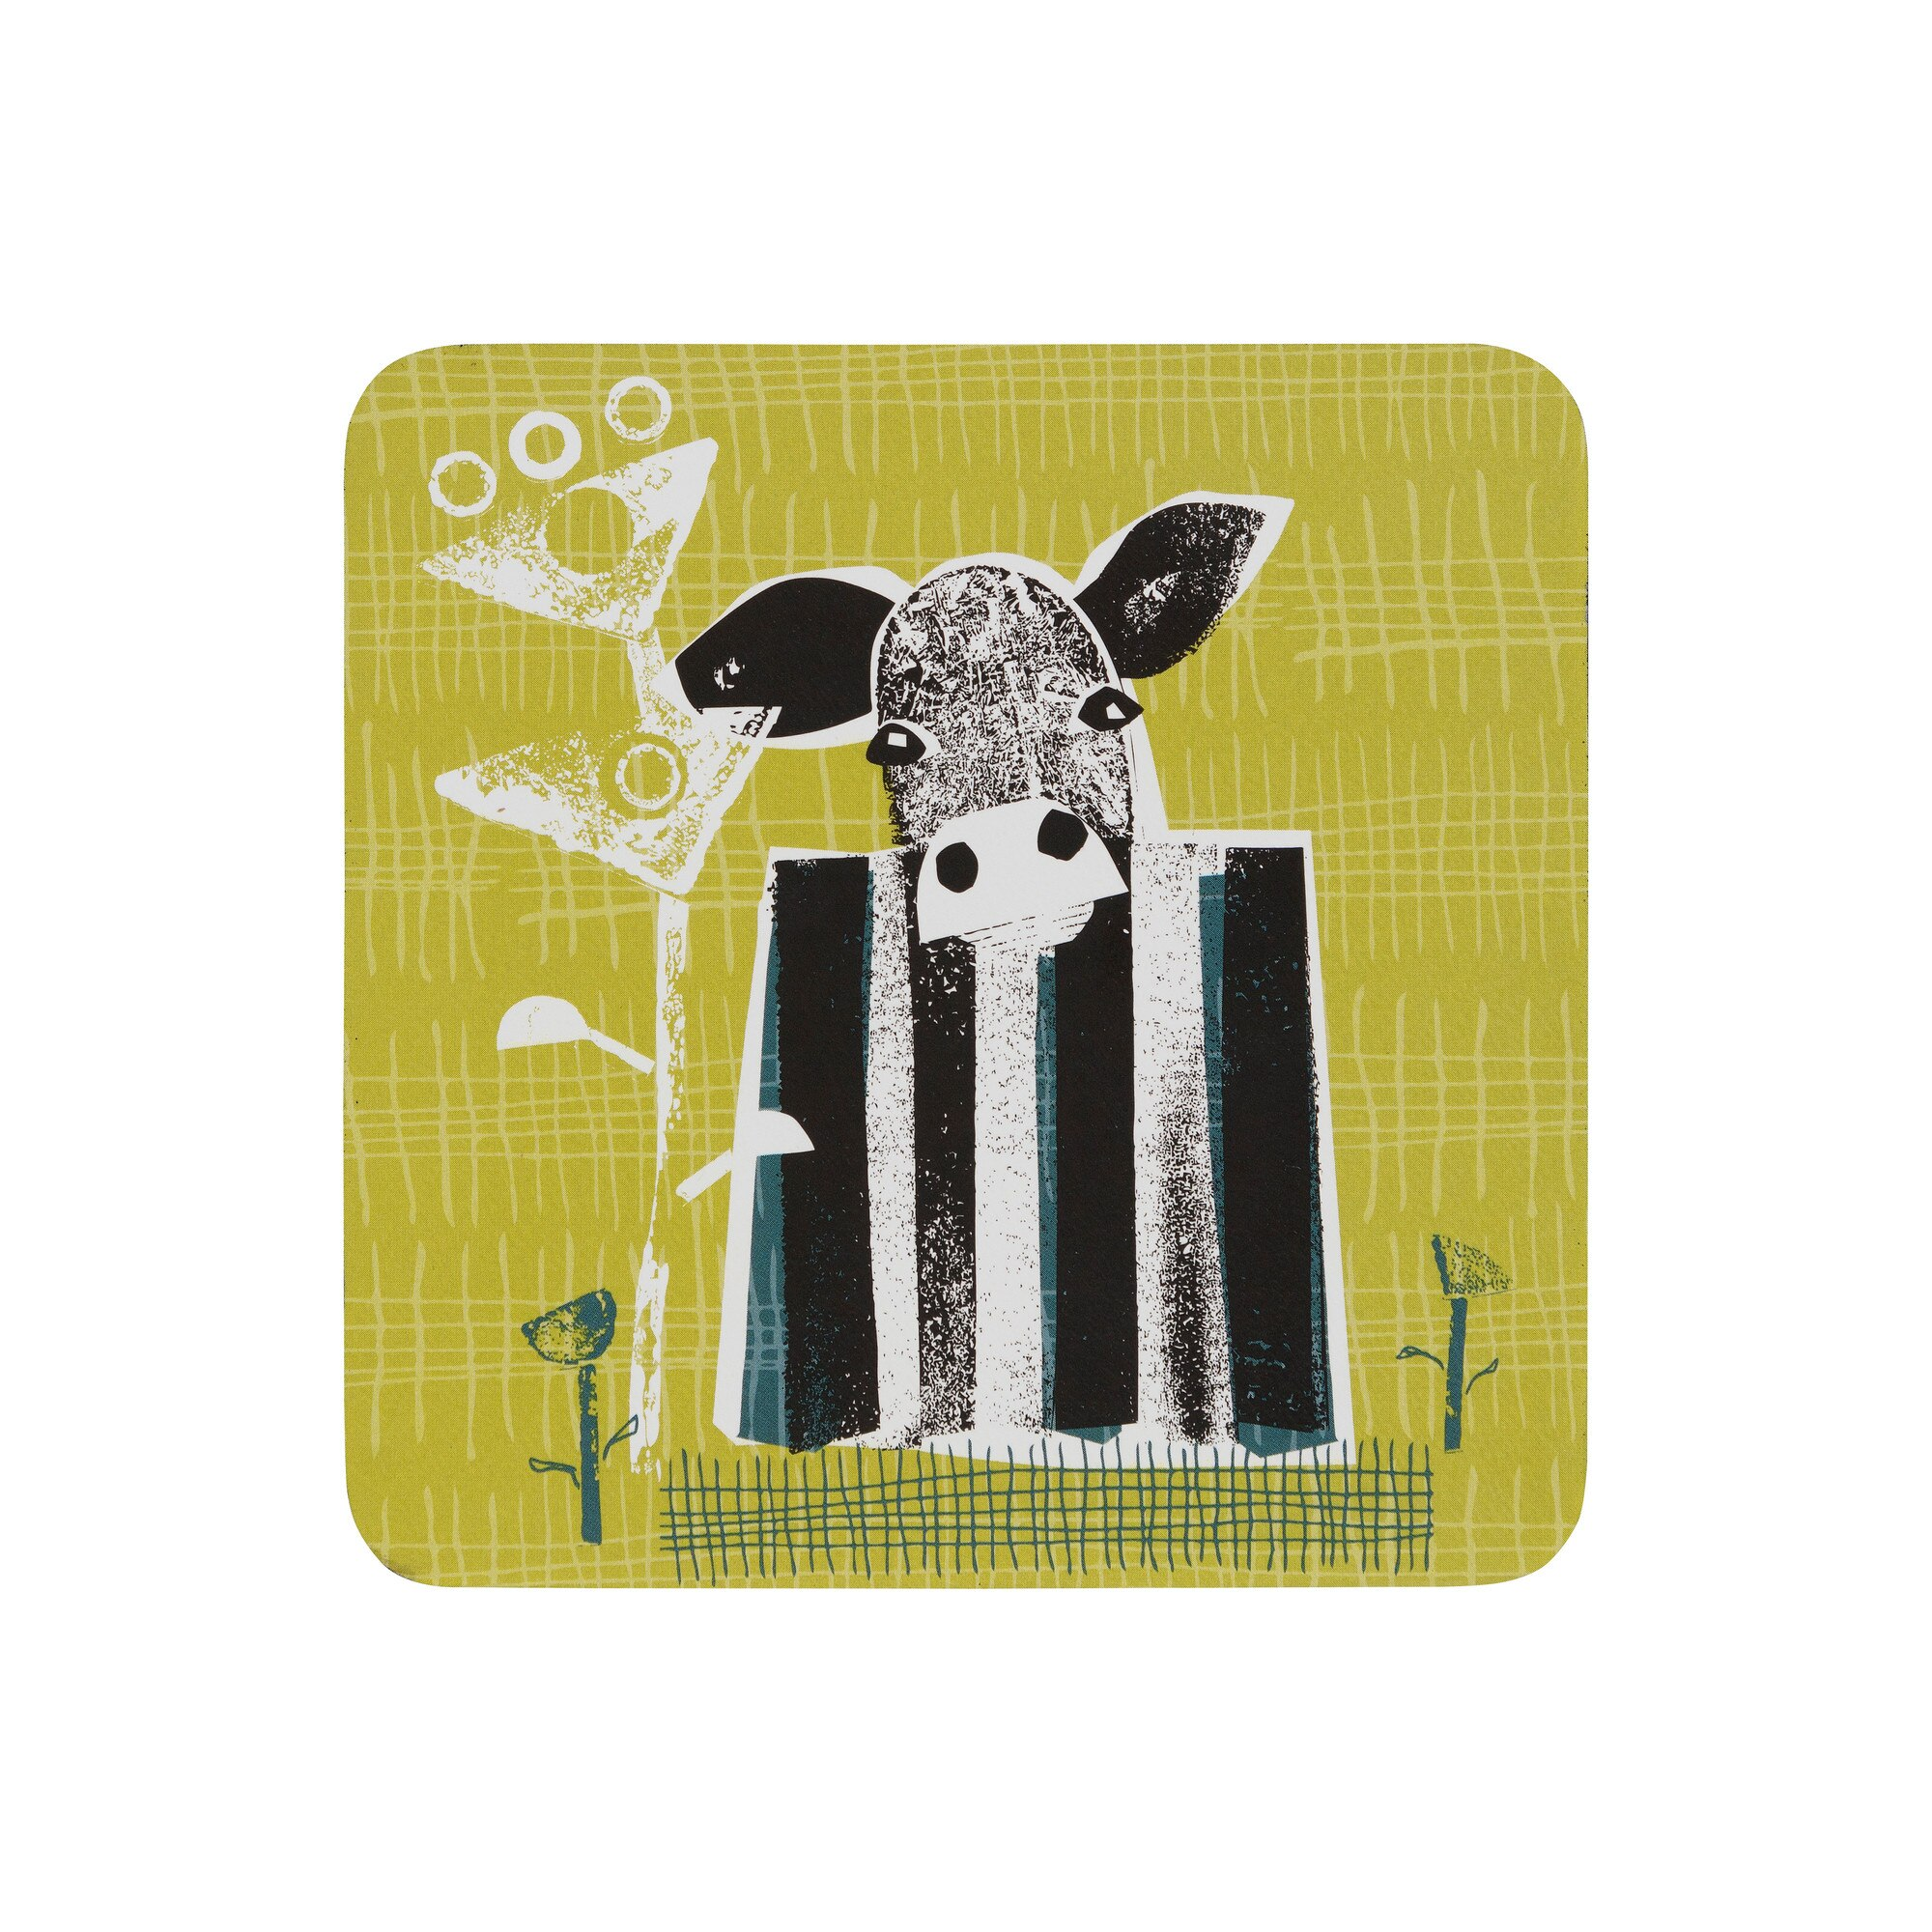 Compare prices for Denby Cow Coasters Set of 6